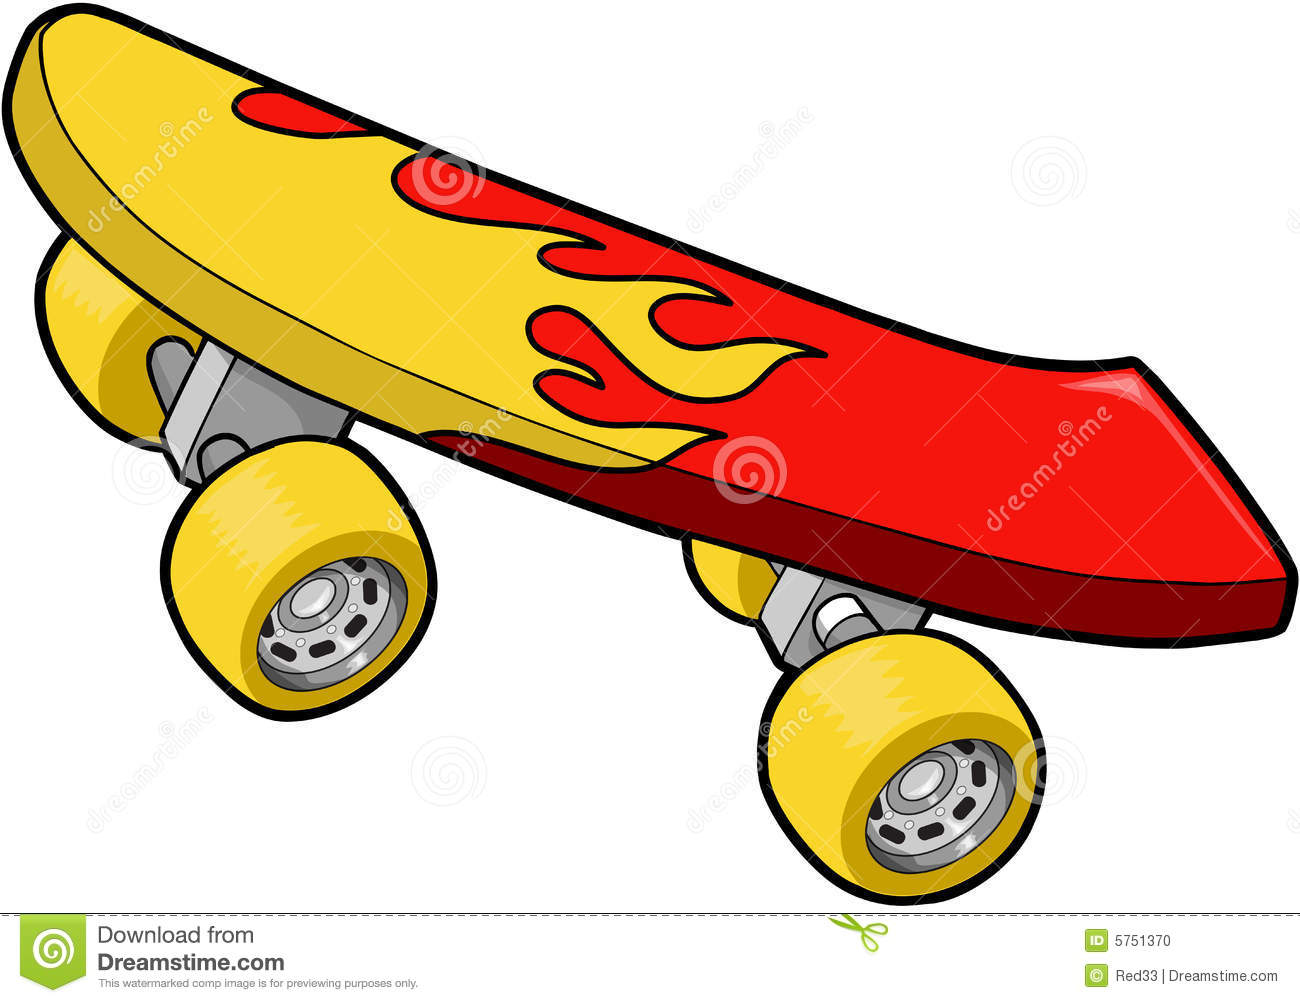 Skateboard clipart #17, Download drawings